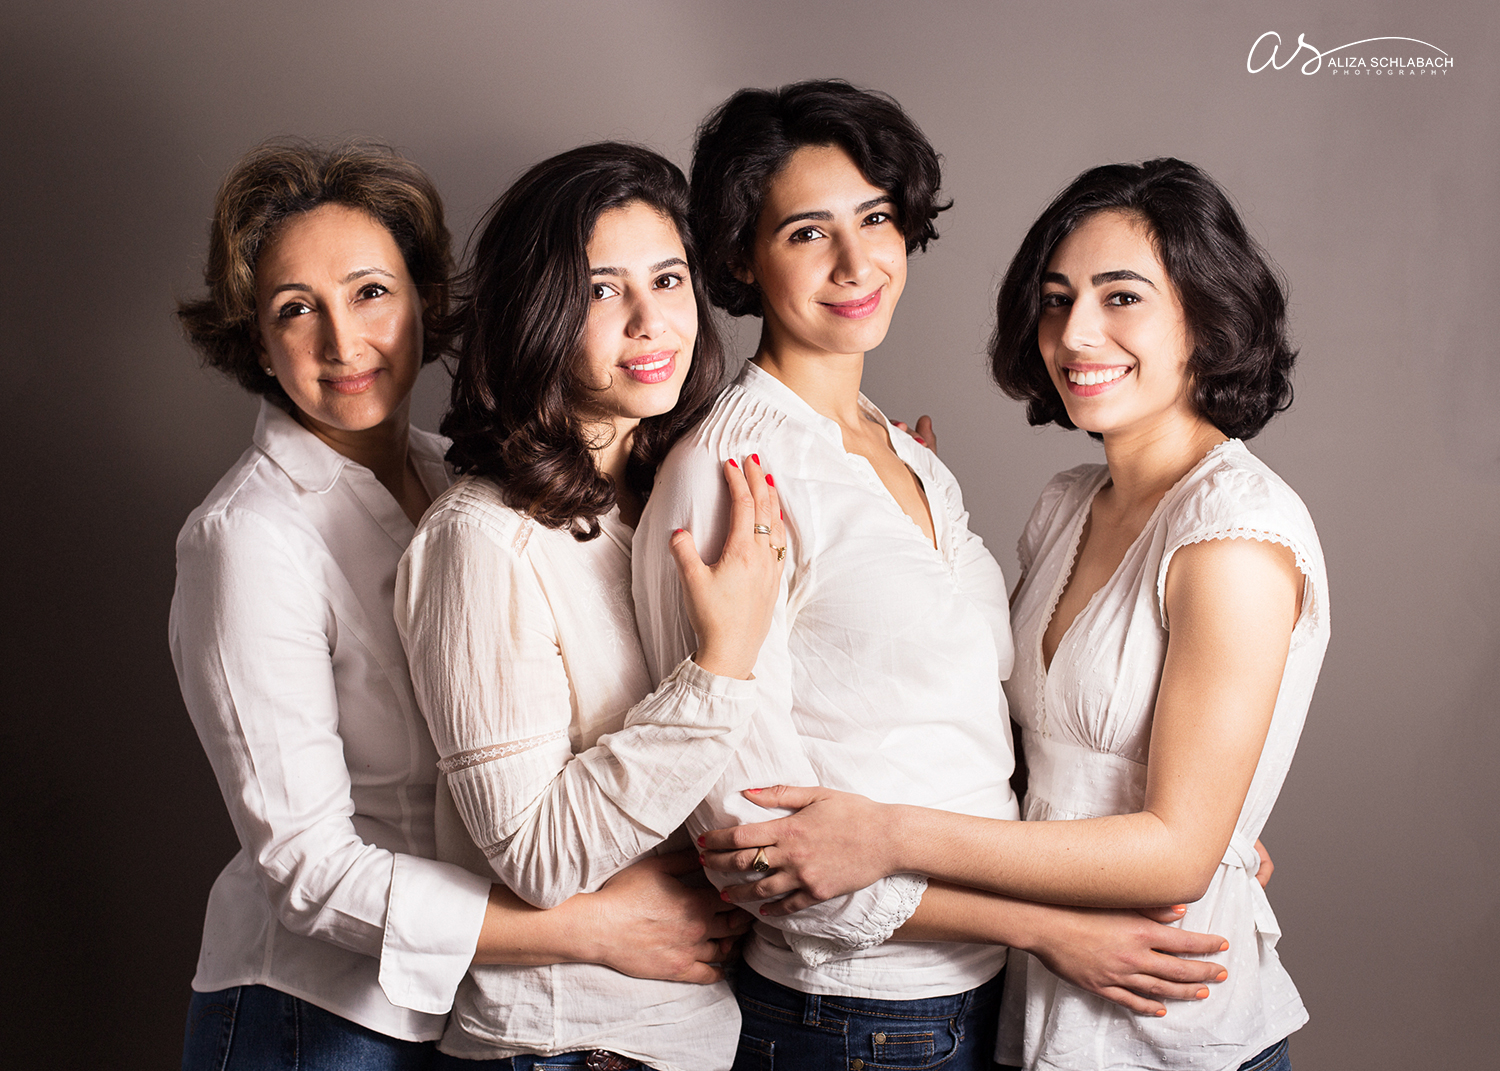 Portrait of a beautiful mother with her 3 grown daughters